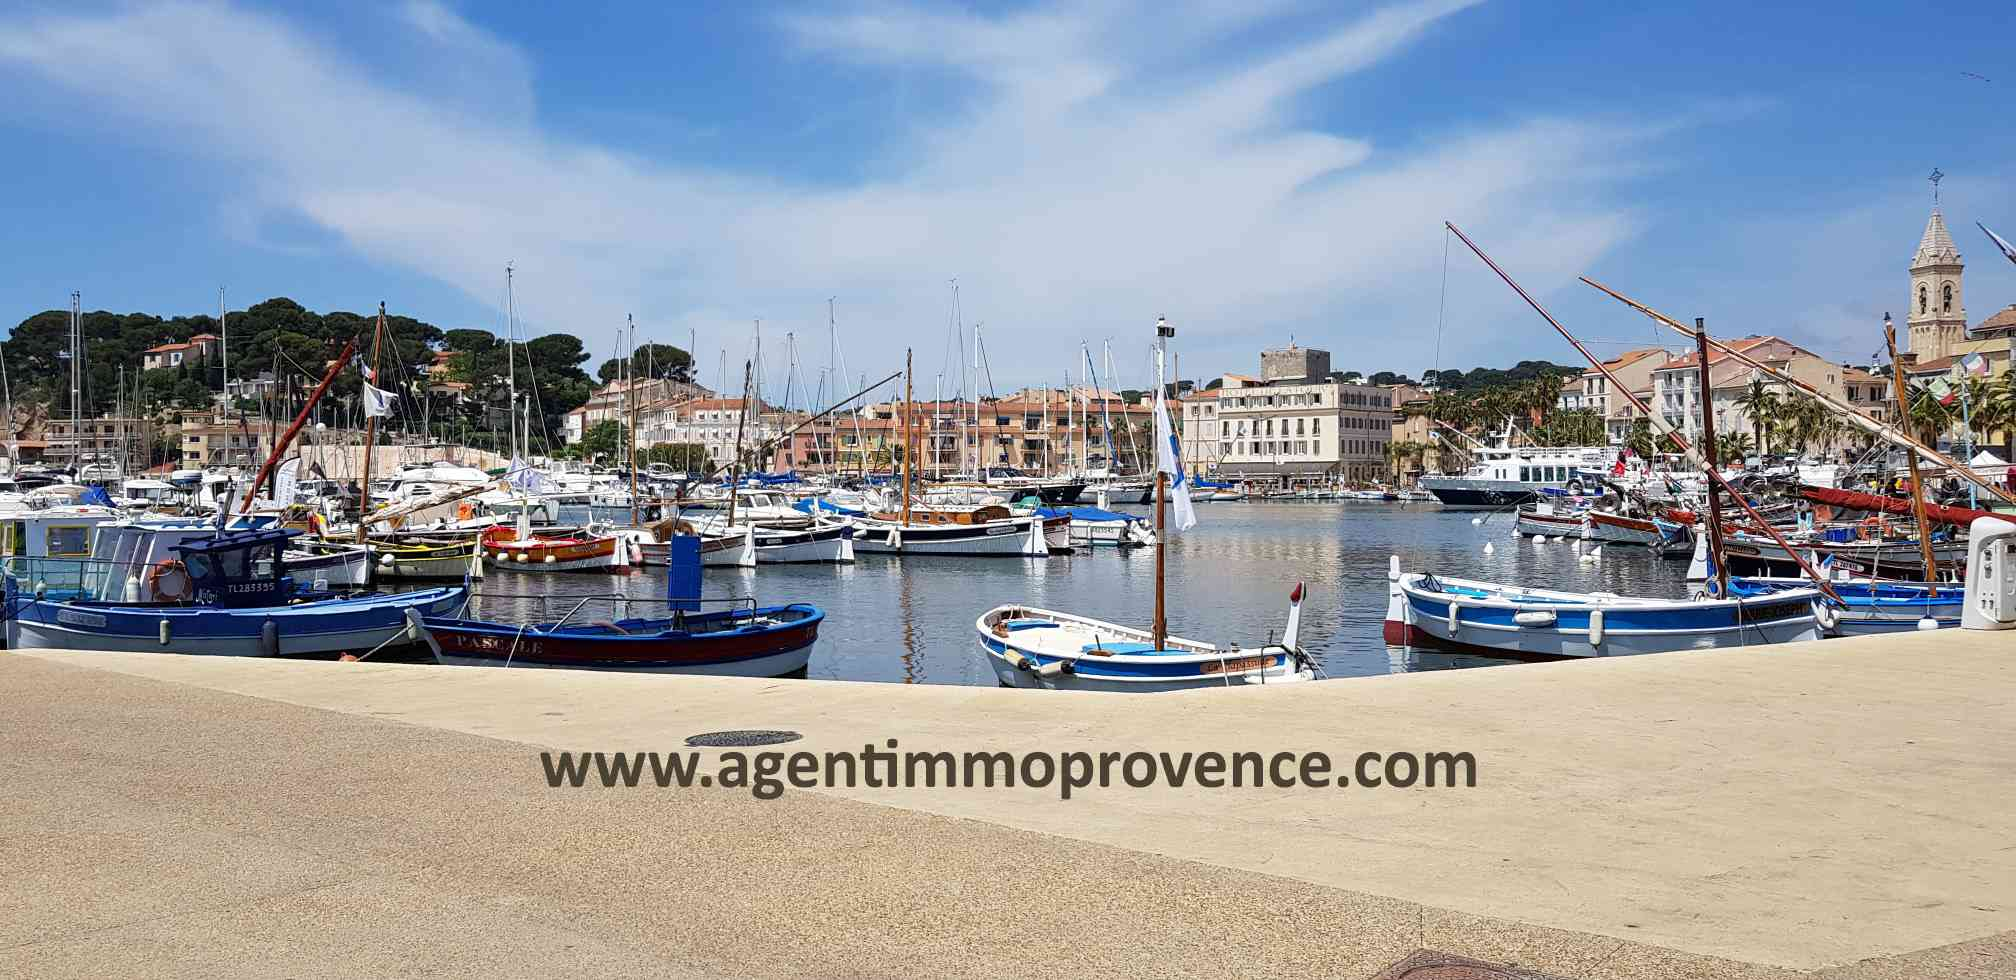 AgentImmoProvence | Aubagne France | visite virtuelle 360 3D VR